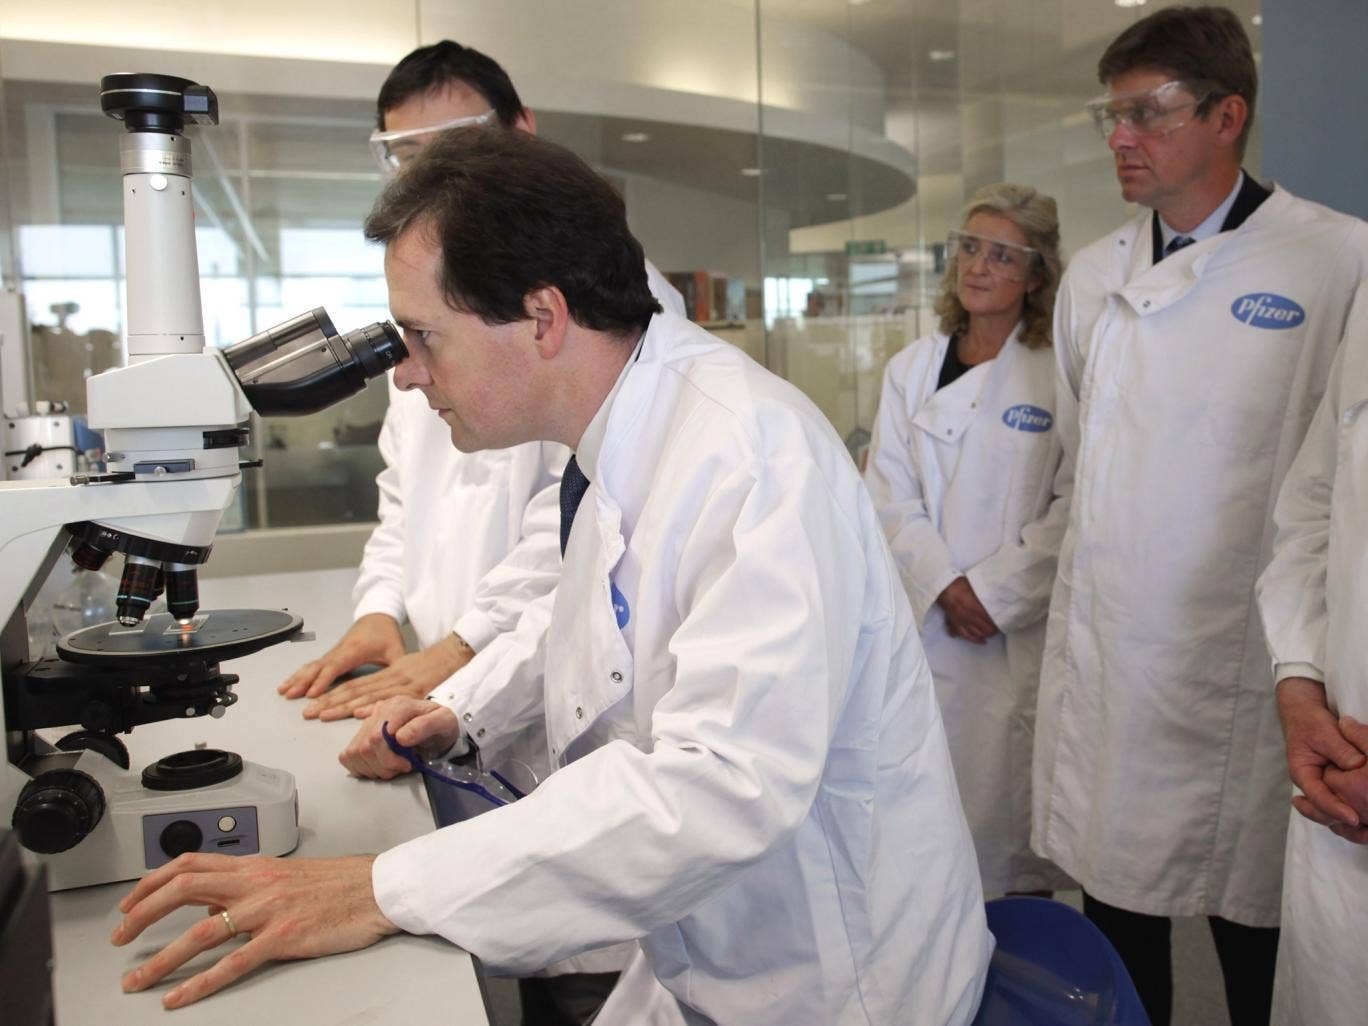 Chancellor George Osborne looks through a microscope at Pfizer's pharmaceutical science lab in 2011